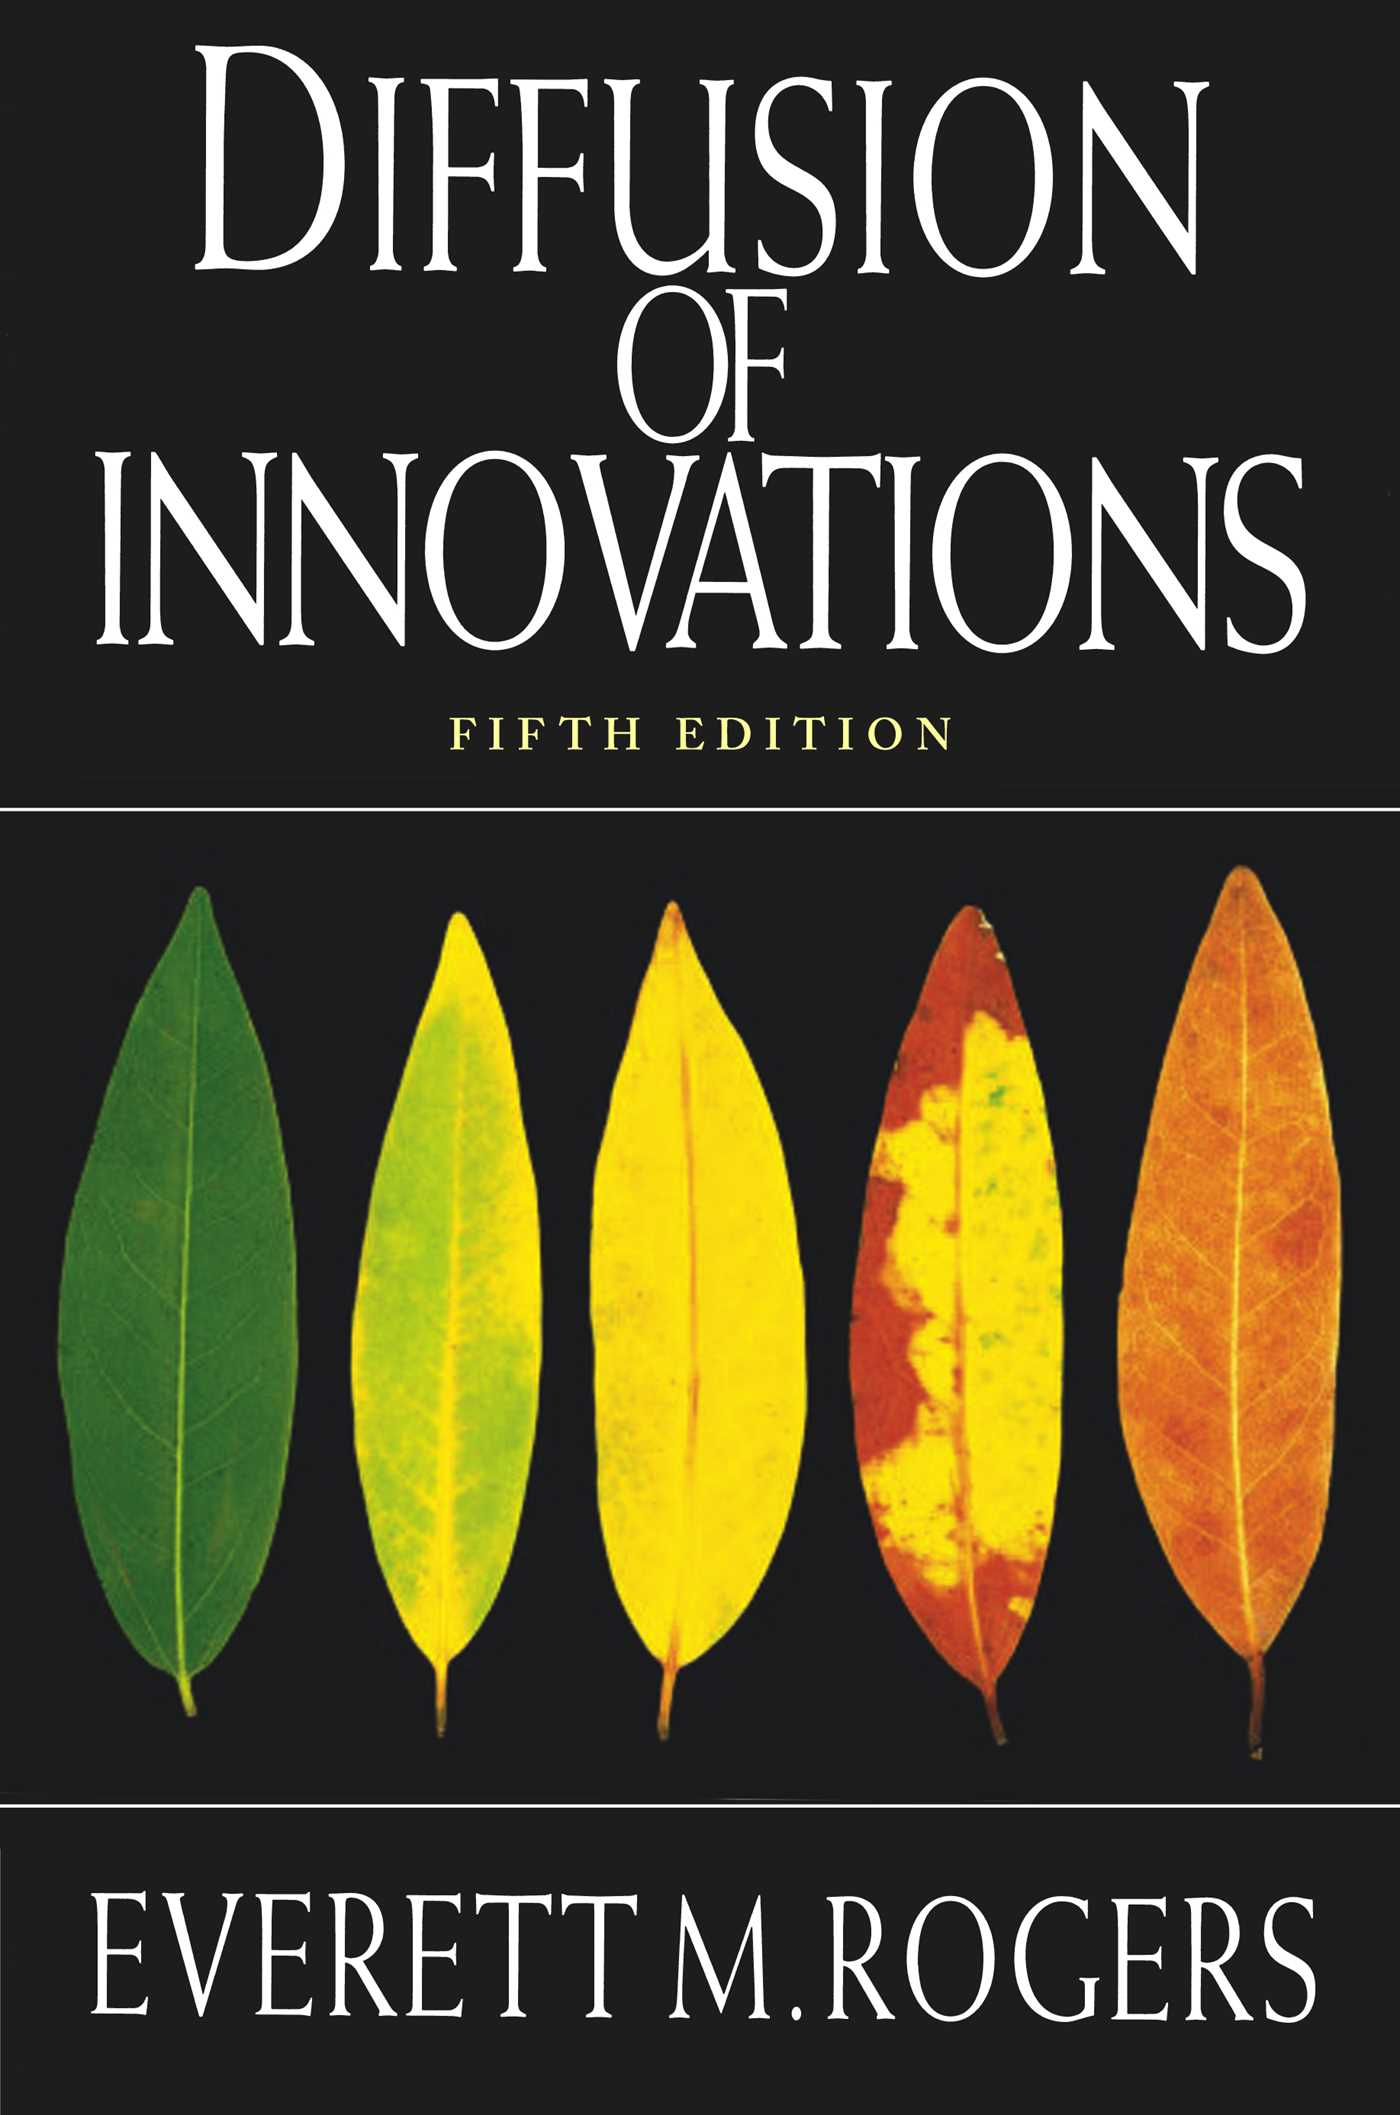 Diffusion-of-innovations-5th-edition-9780743258234_hr